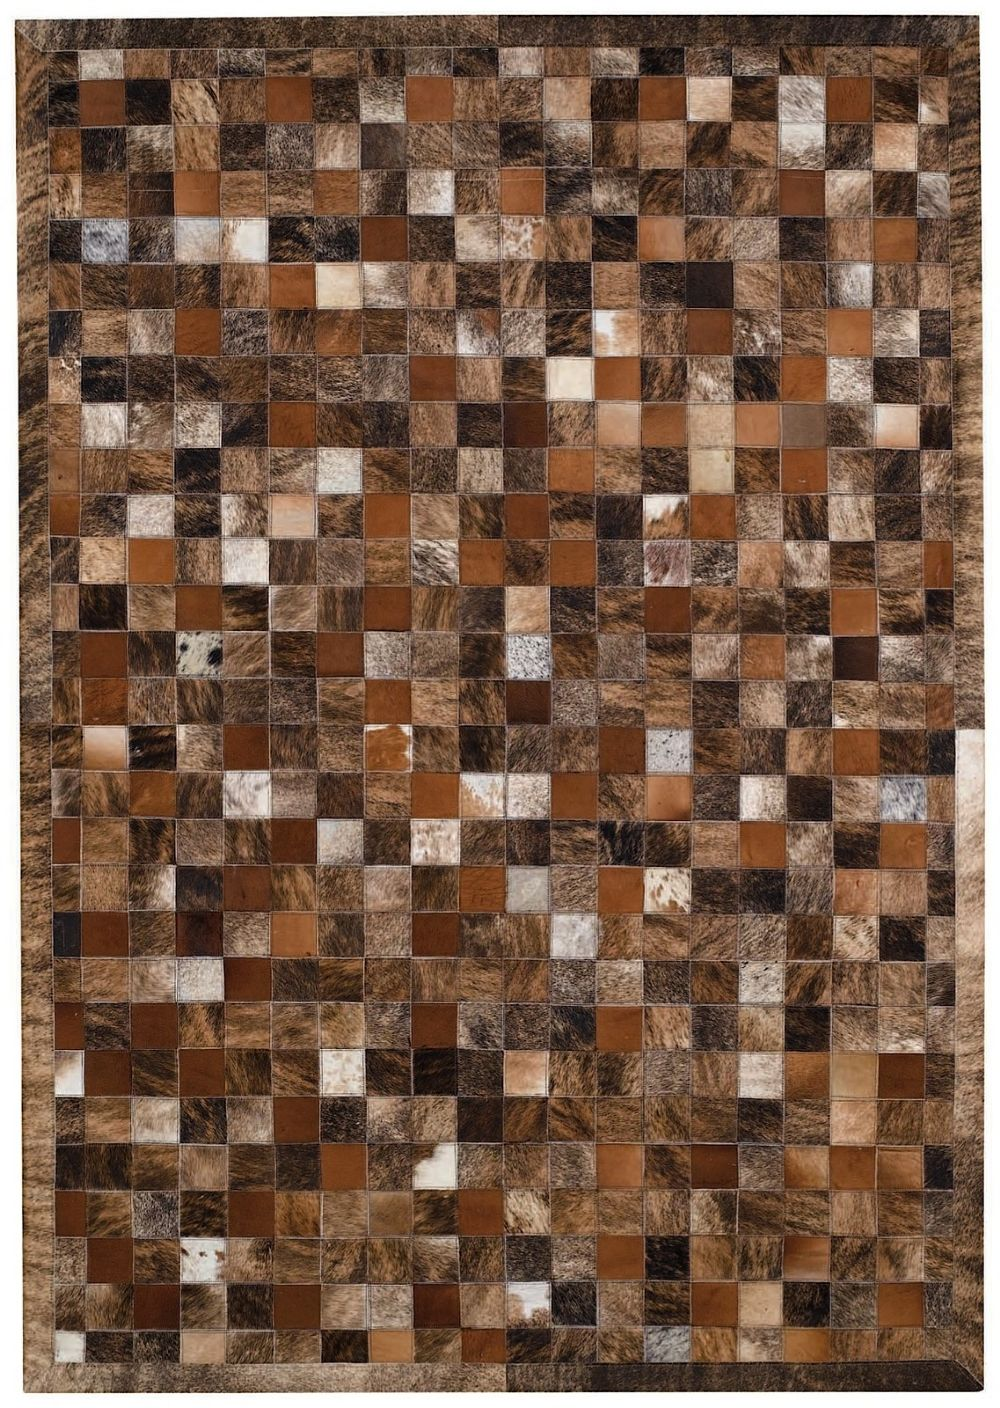 capel laredo-tiles contemporary area rug collection